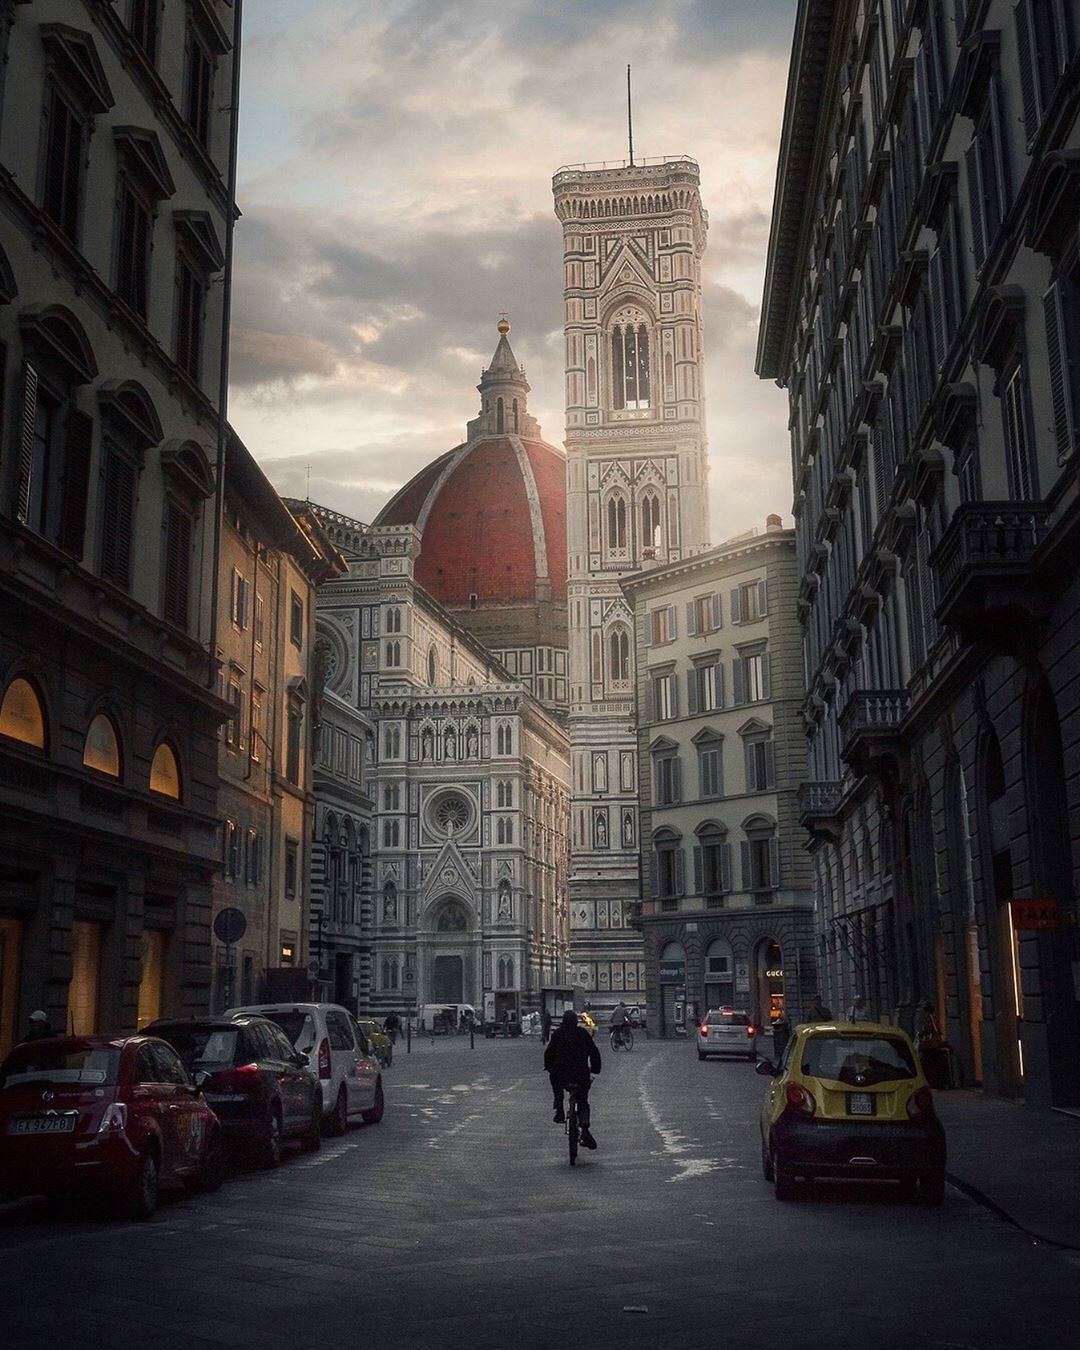 Morning by the Duomo in Florence by Michael Sidofsky